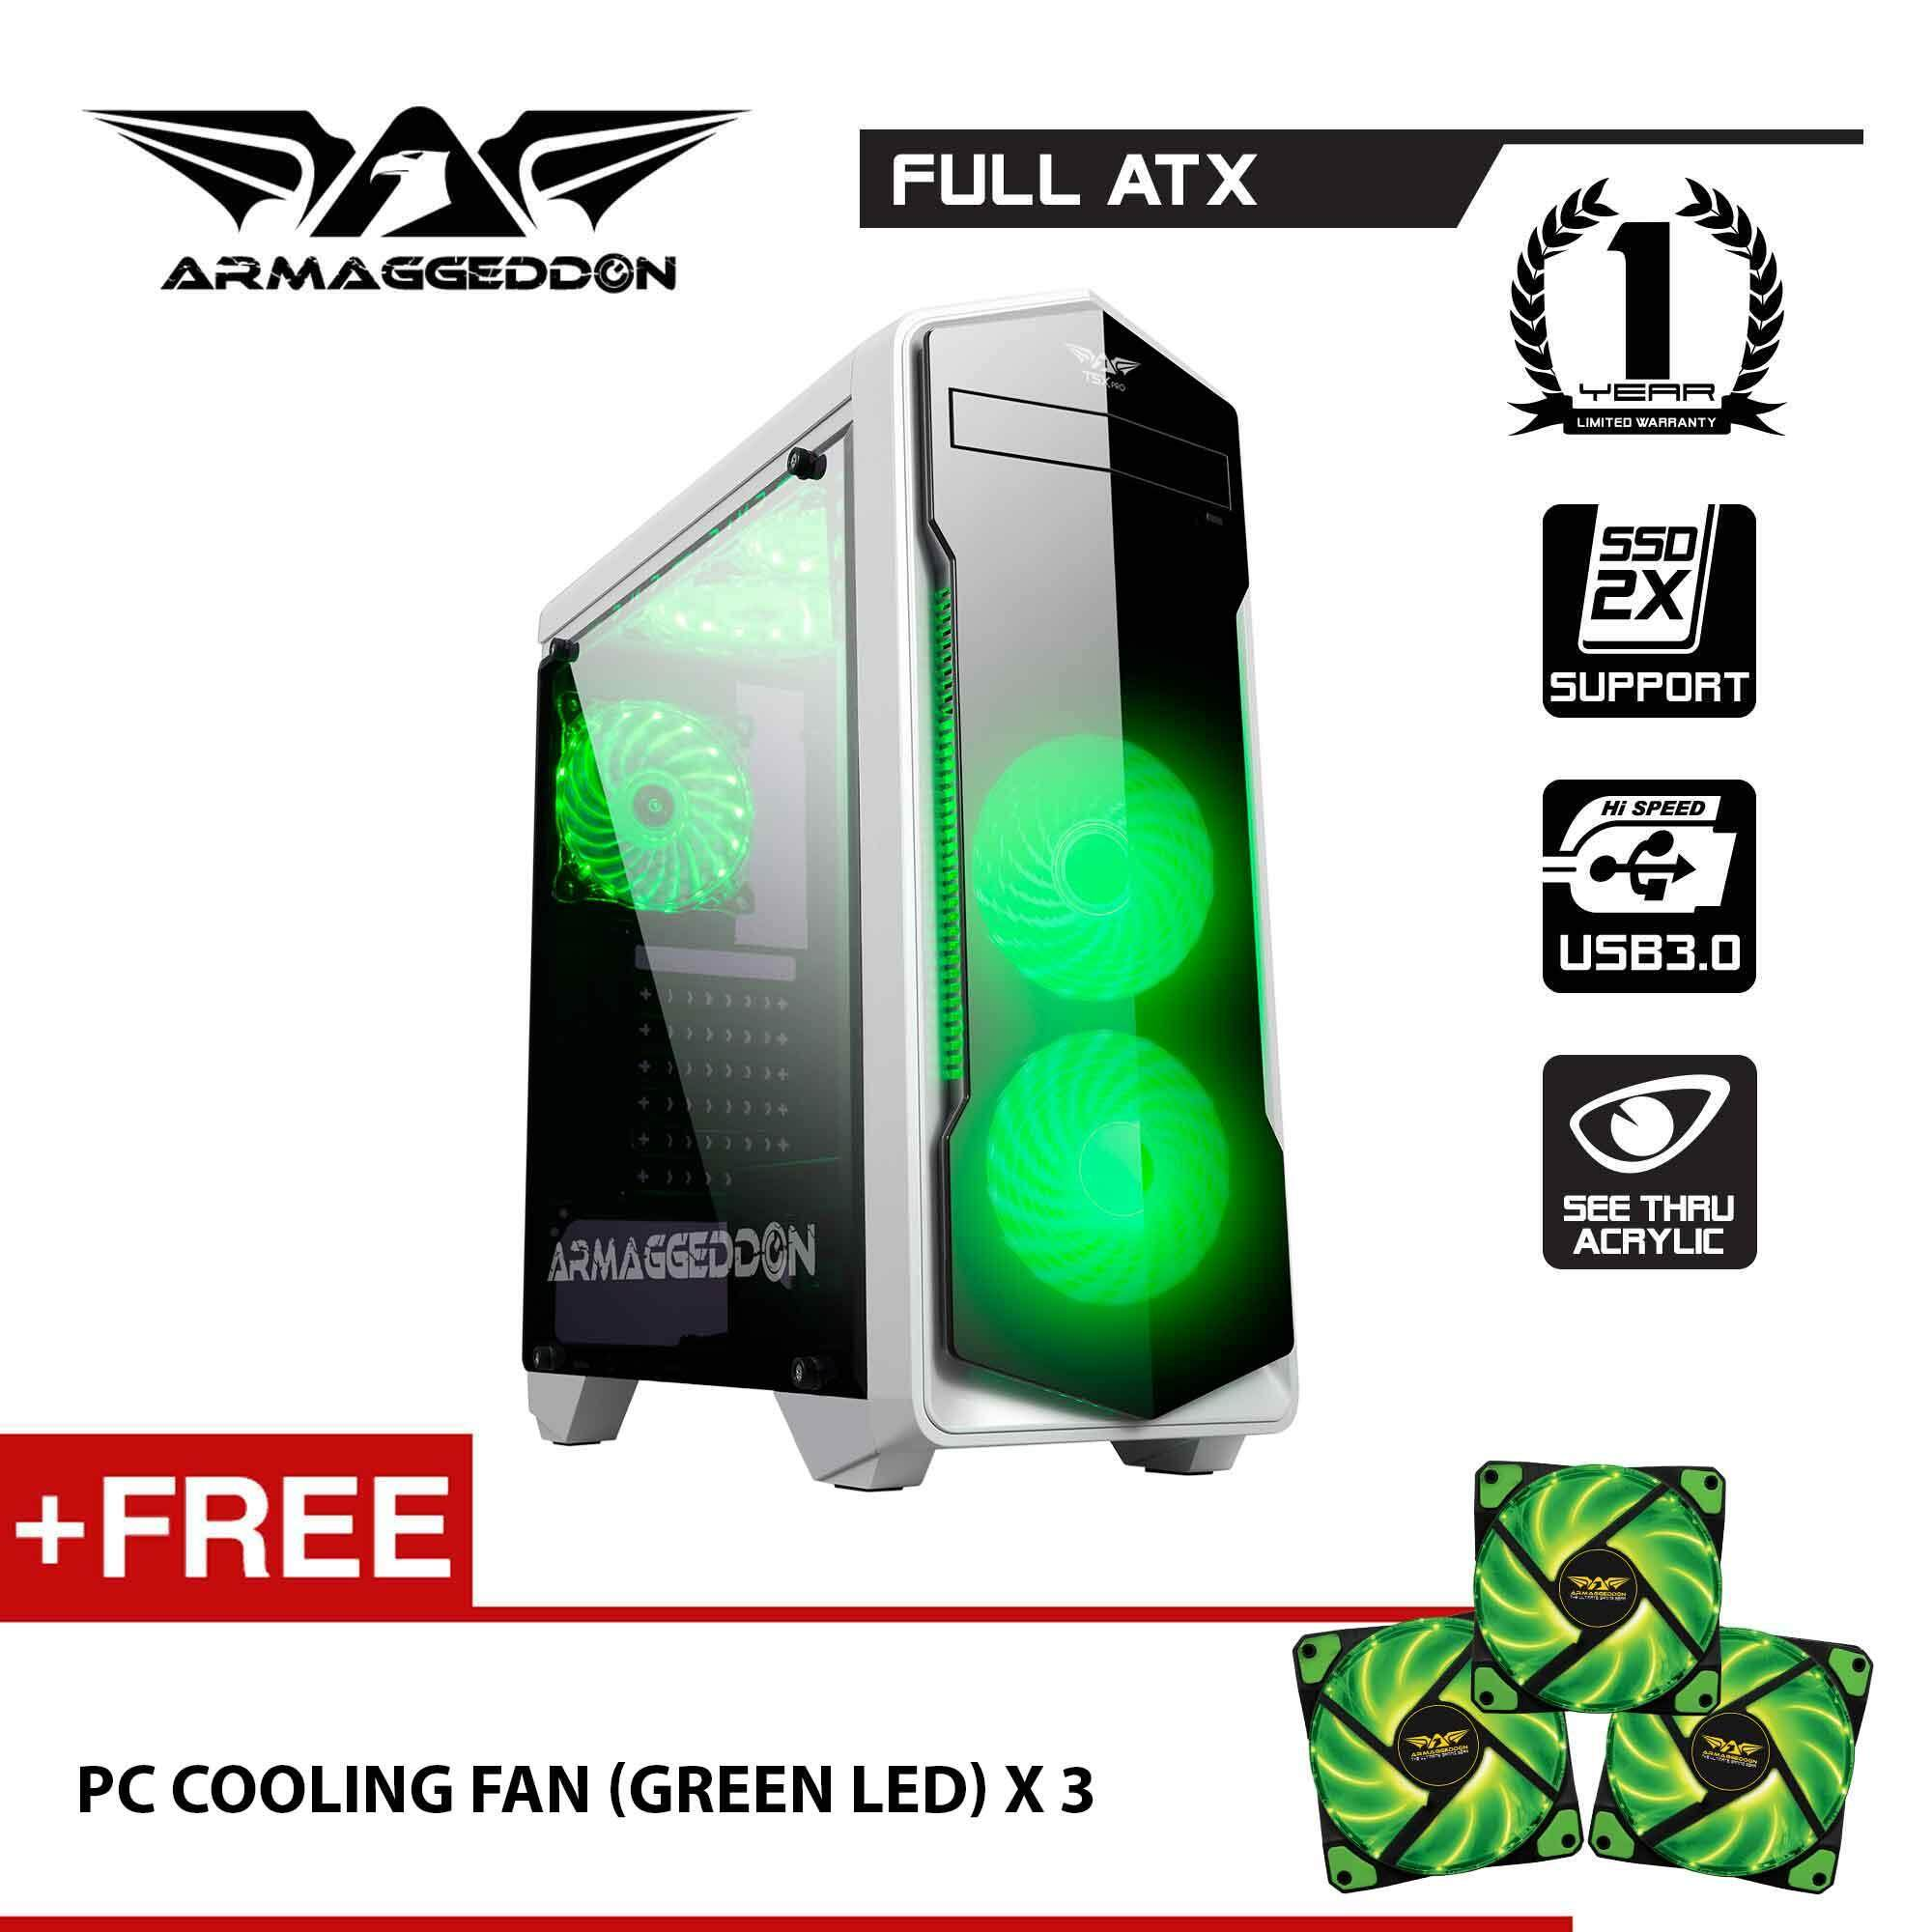 Armaggeddon T5x Pro Full ATX - Smart Gaming Structure PC Case Free LED Cooling Fan (x3) Malaysia